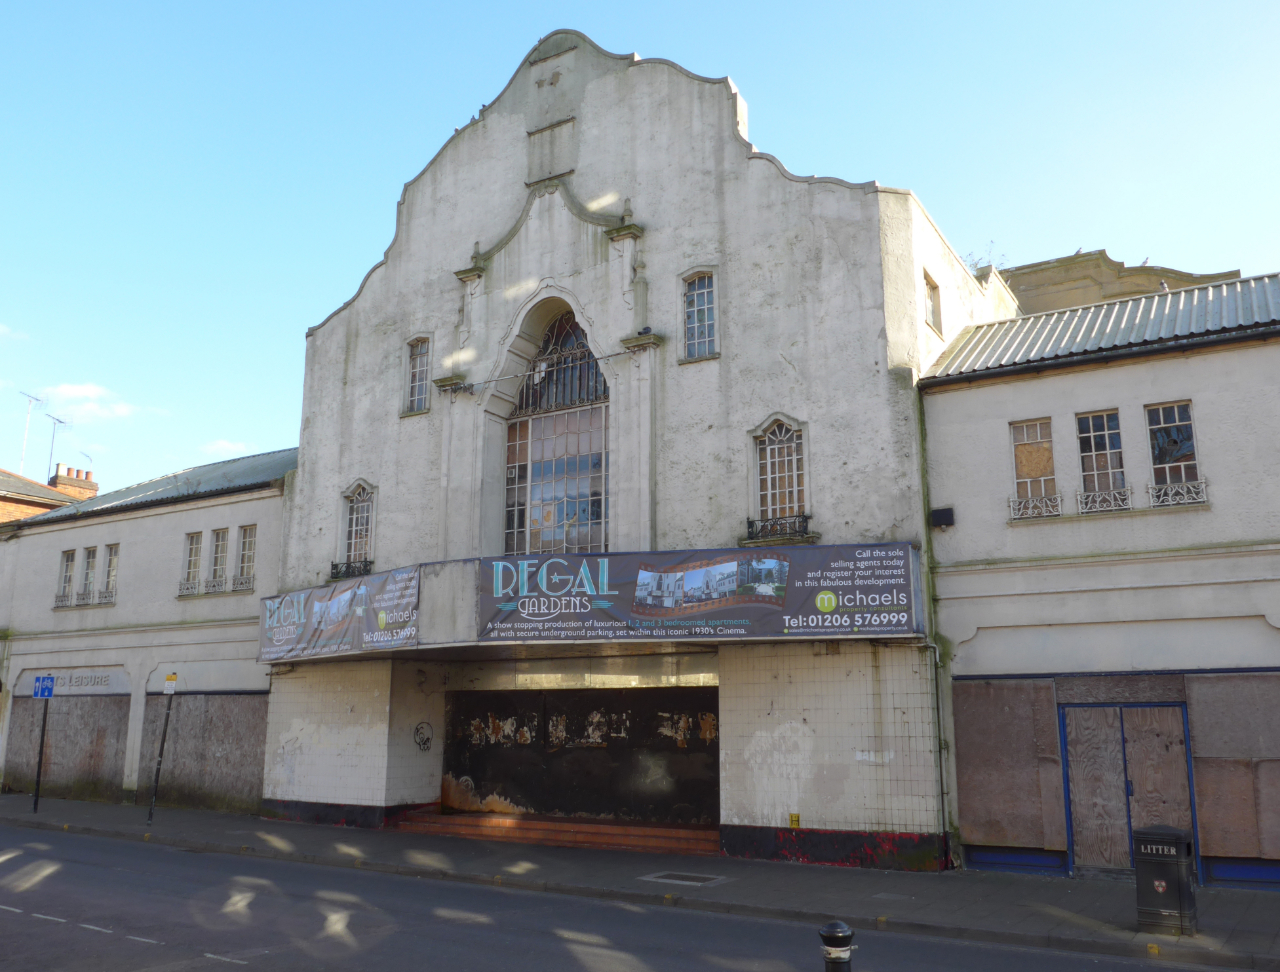 Old Odeon Cinema site, Colchester